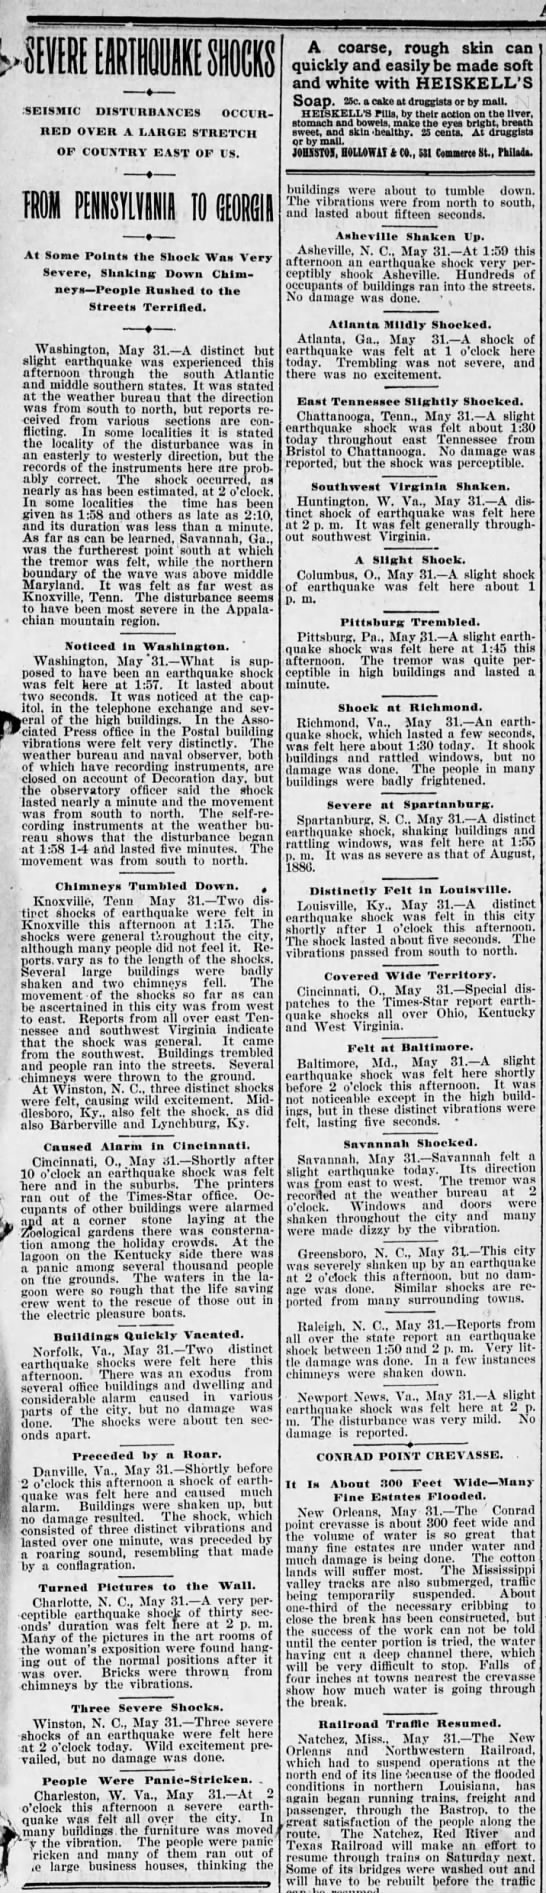 03 June 1897 The Austin Weekly Statesman (Austin, TX), p.3. -